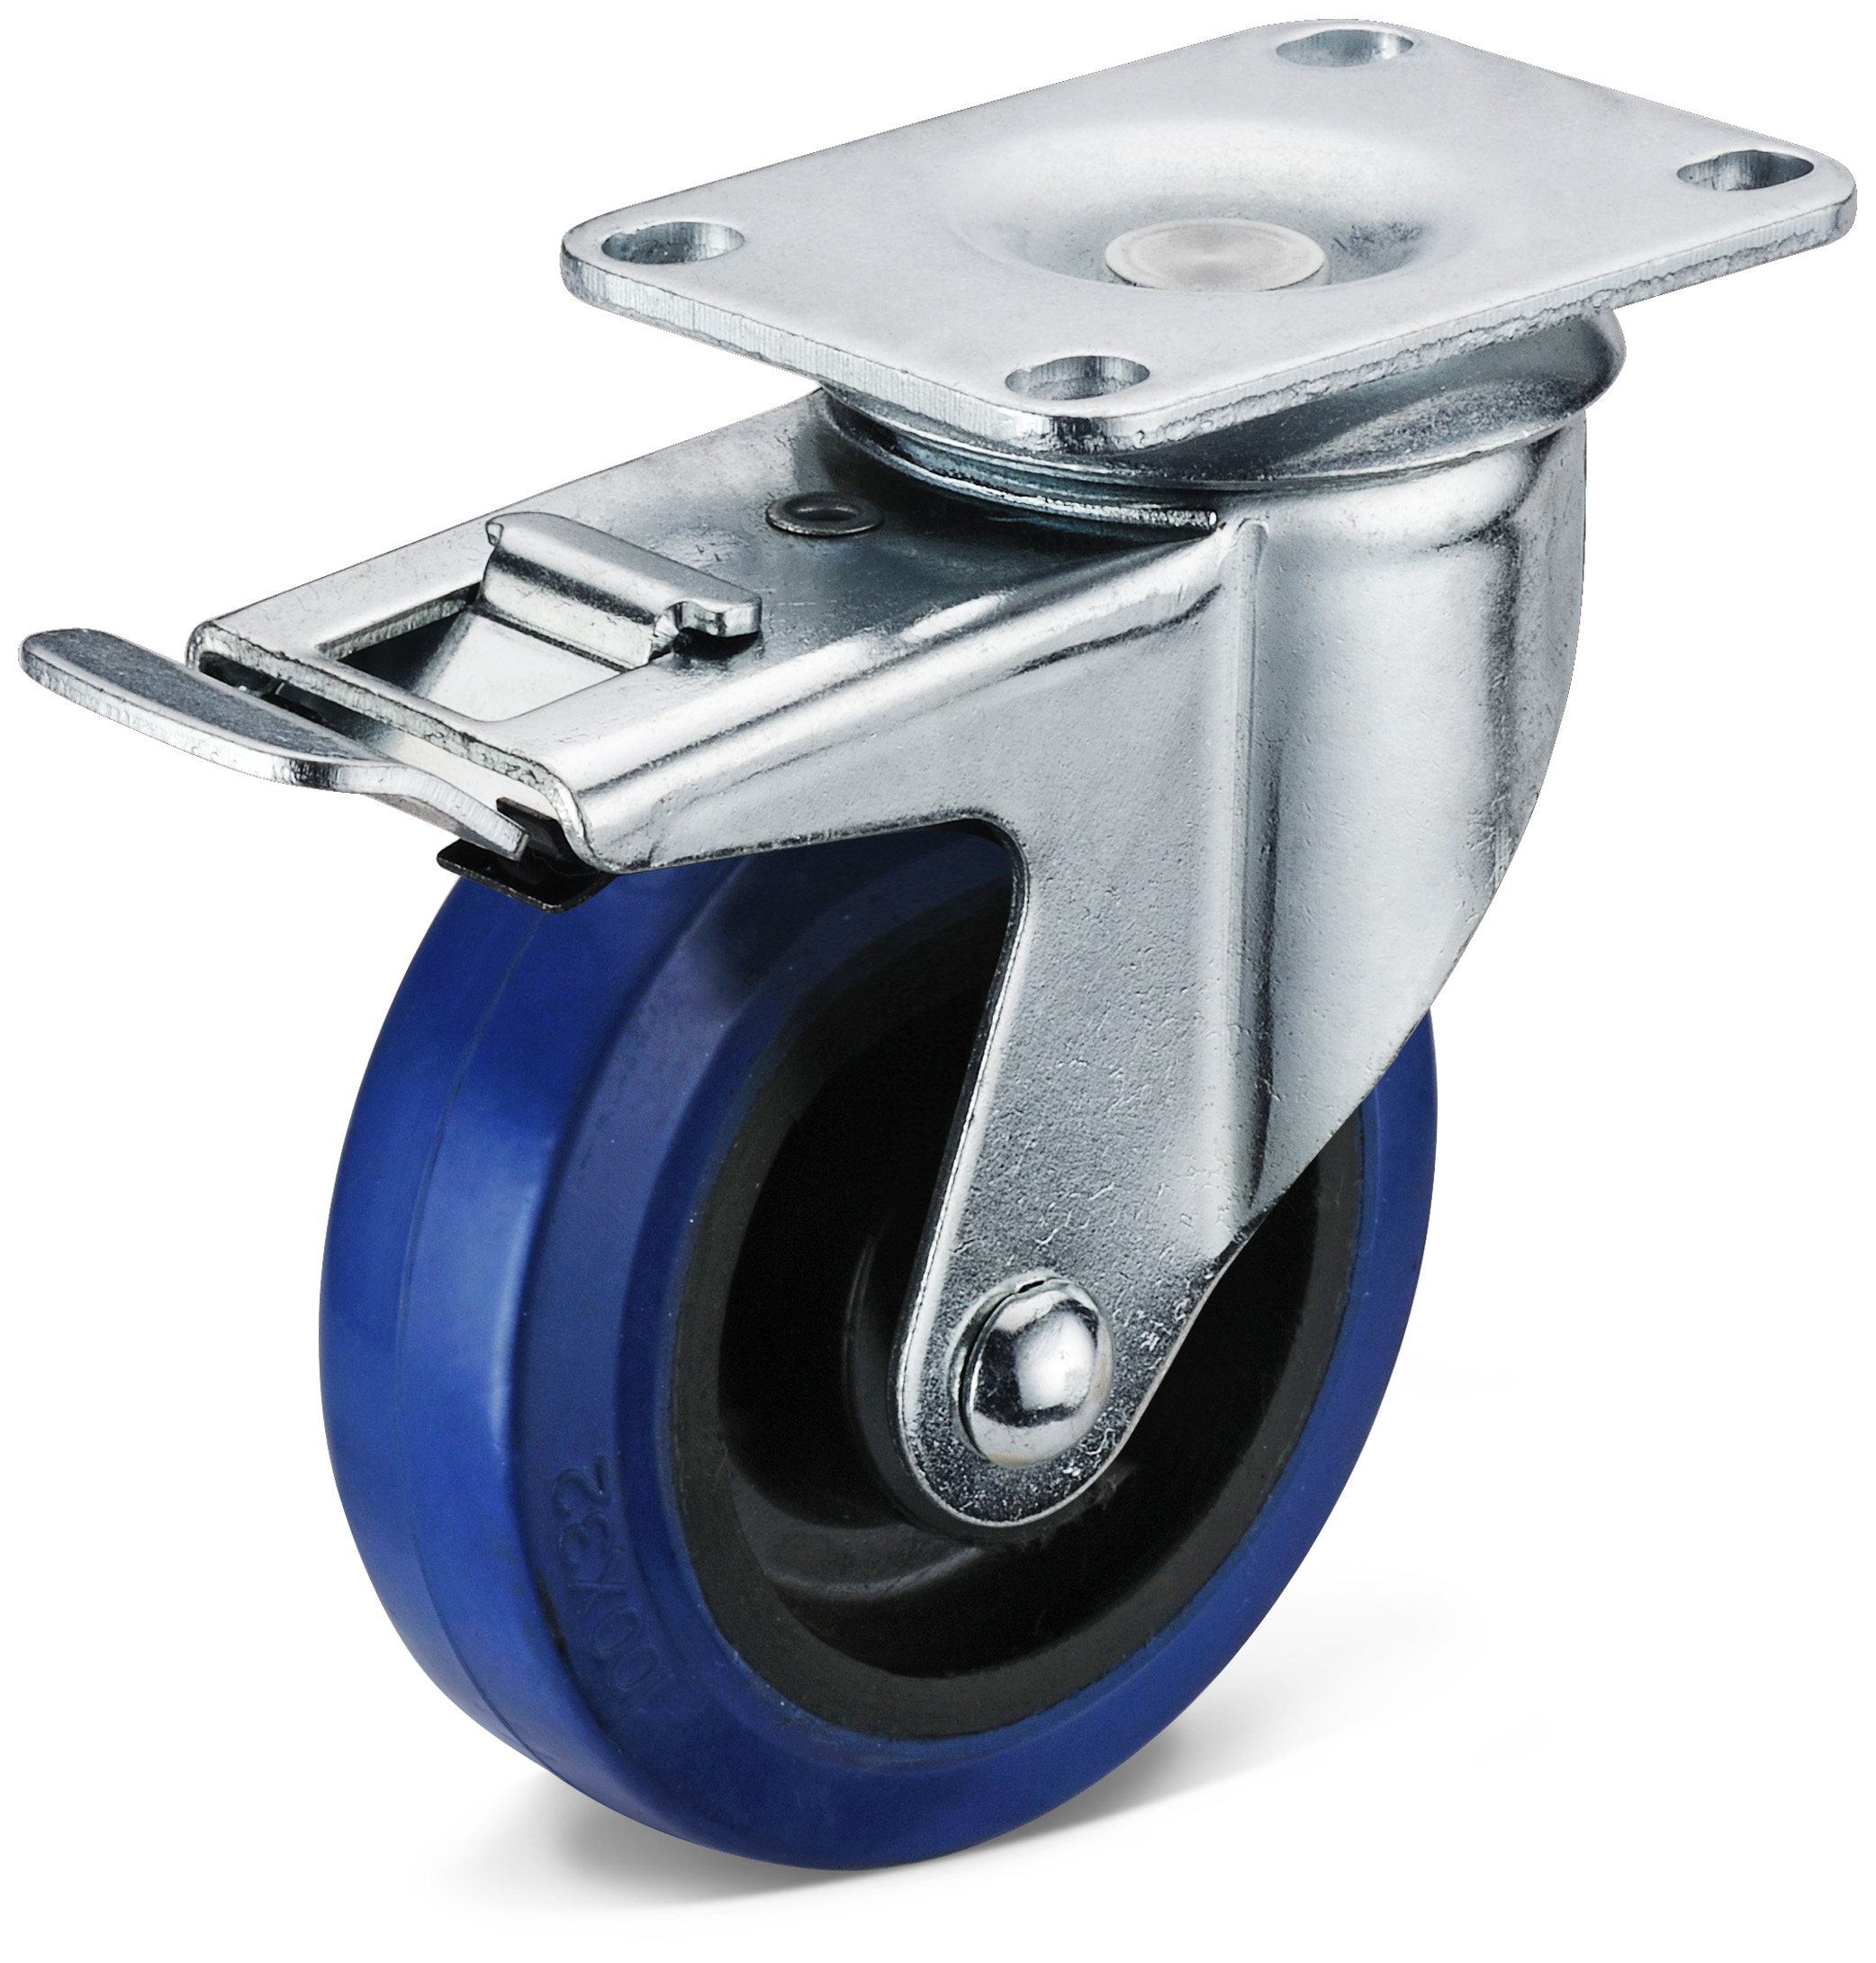 Elastic Rubber Double Brake Casters